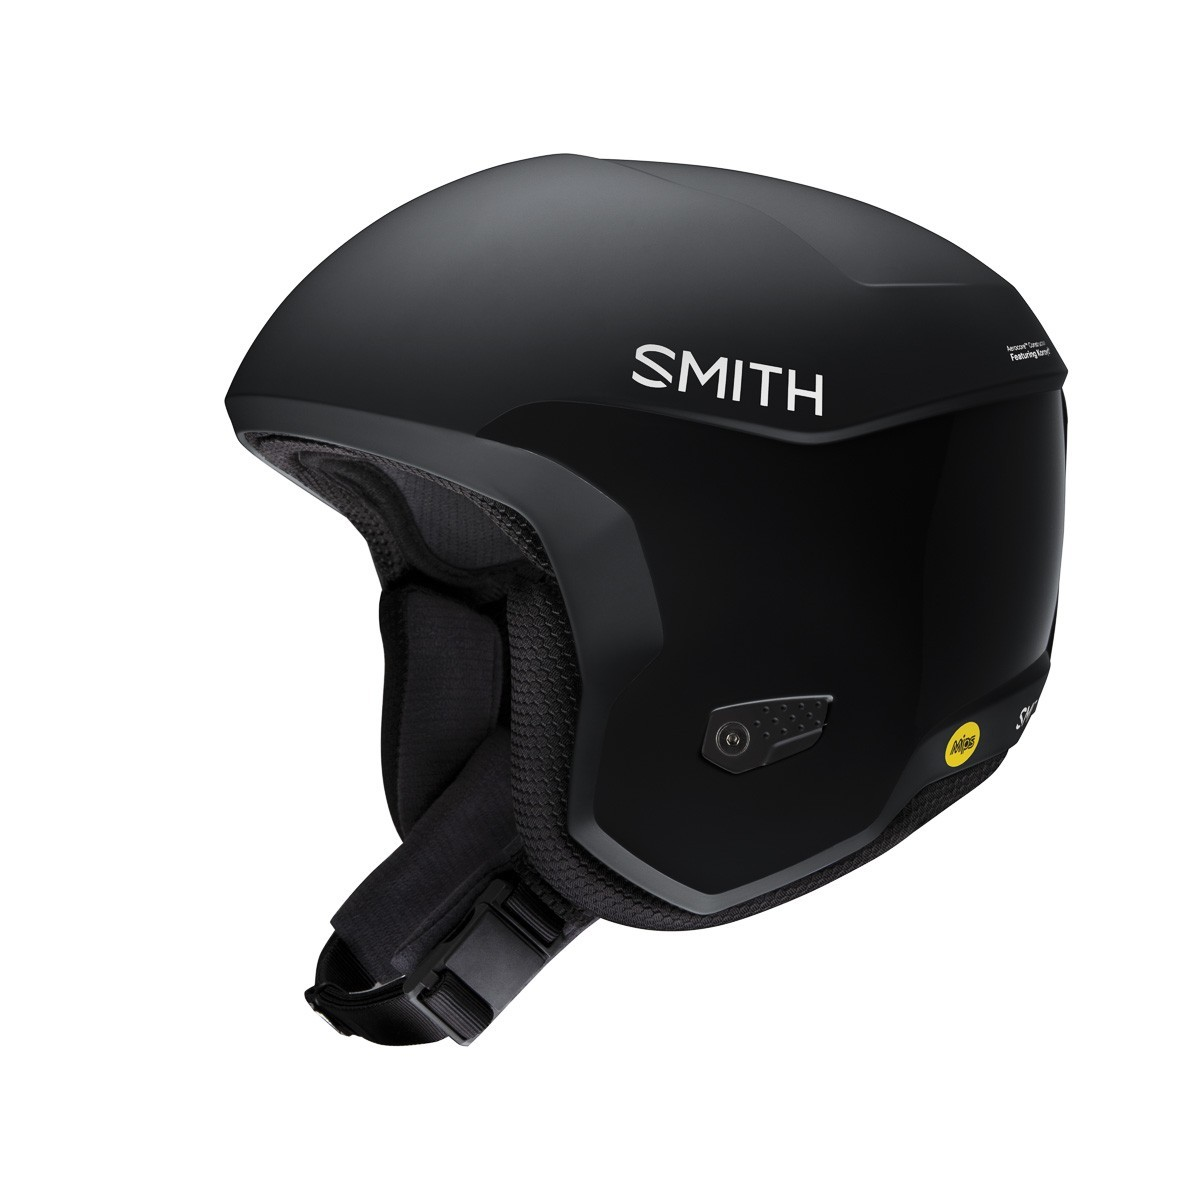 SMITH ICON MIPS matte black - Изображение - AQUAMATRIX